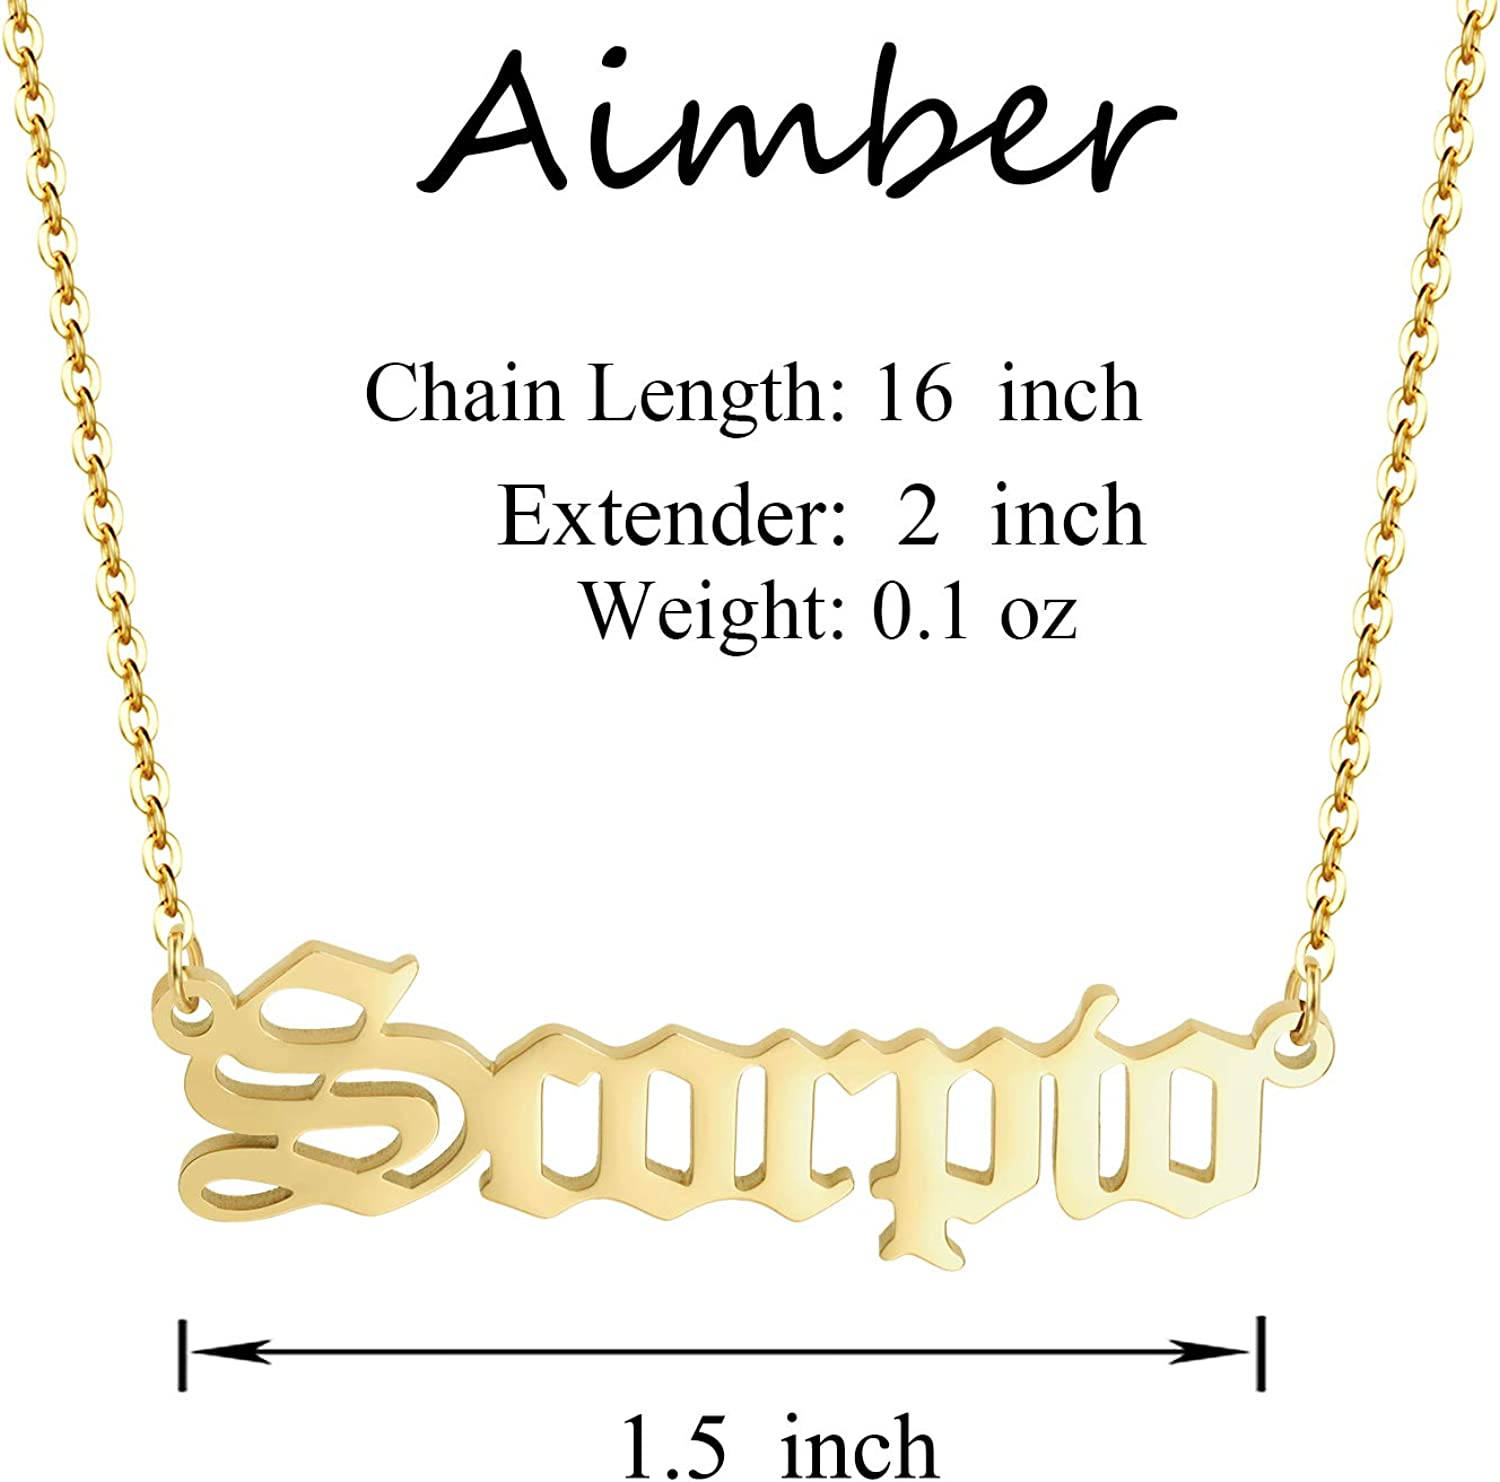 Aimber Old English Zodiac 18K Gold Necklace for Women and Girls Constellation Necklace Birth Star Sign Letter Necklace Horoscope Birth Stainless Necklace Gifts